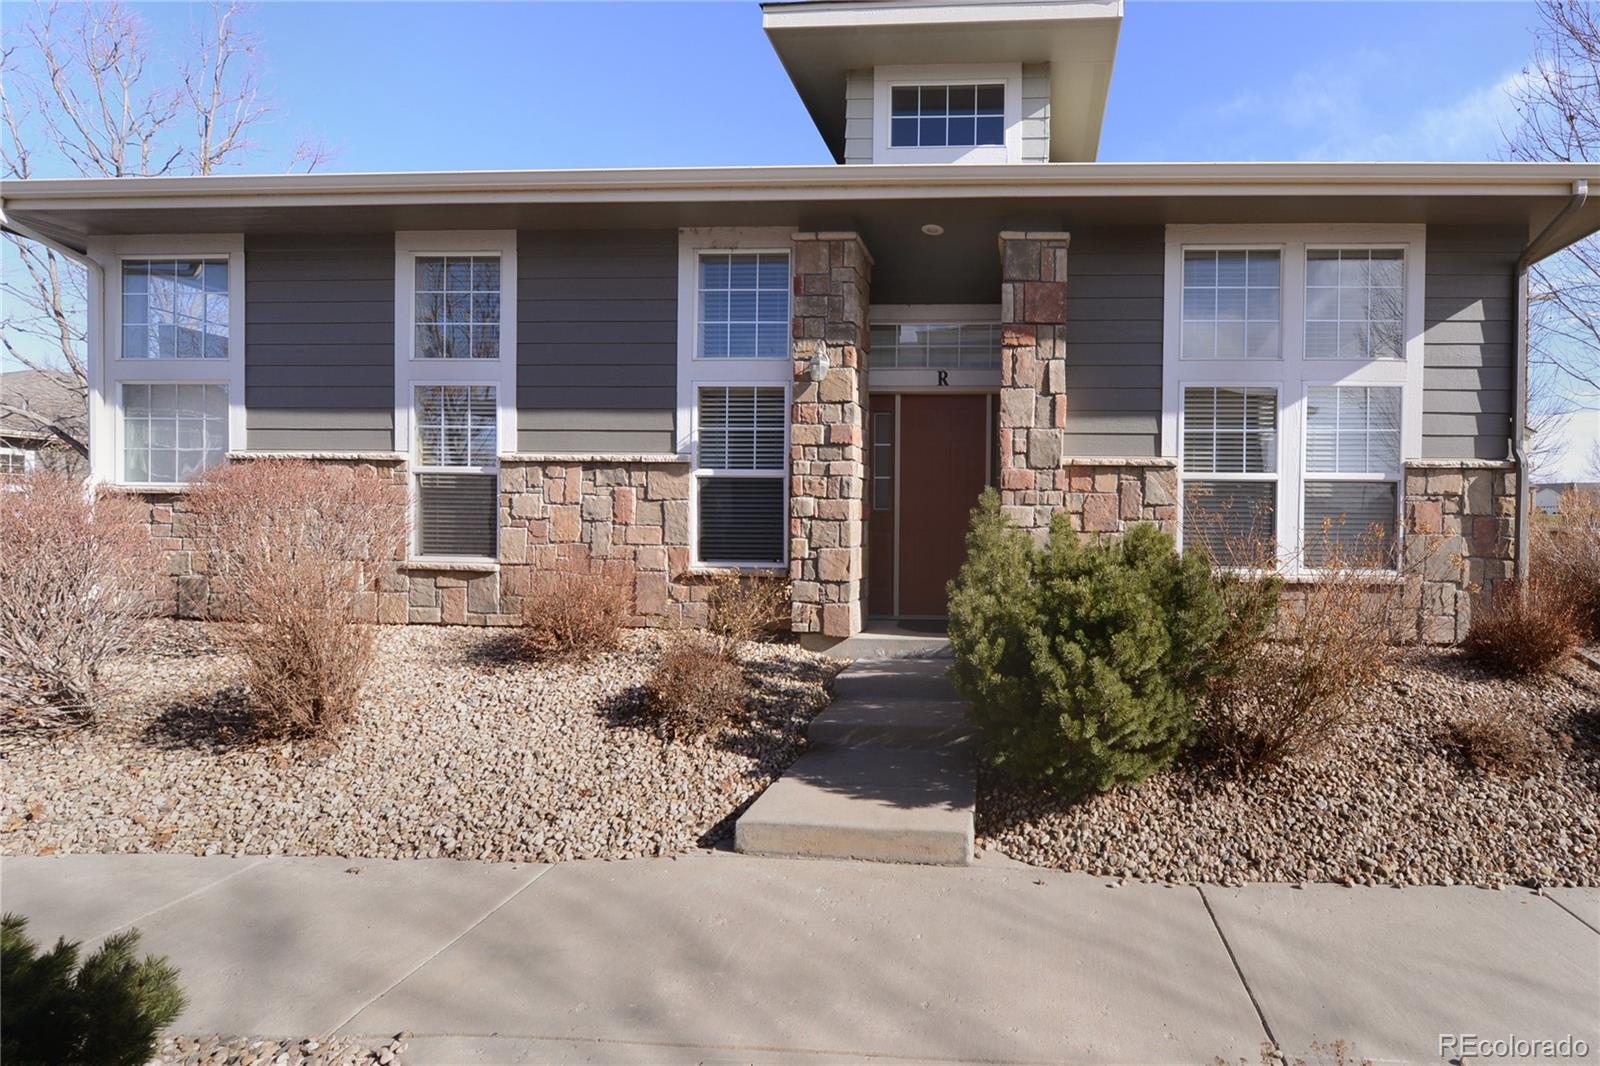 5600 W 3rd Street #5-R Property Photo - Greeley, CO real estate listing